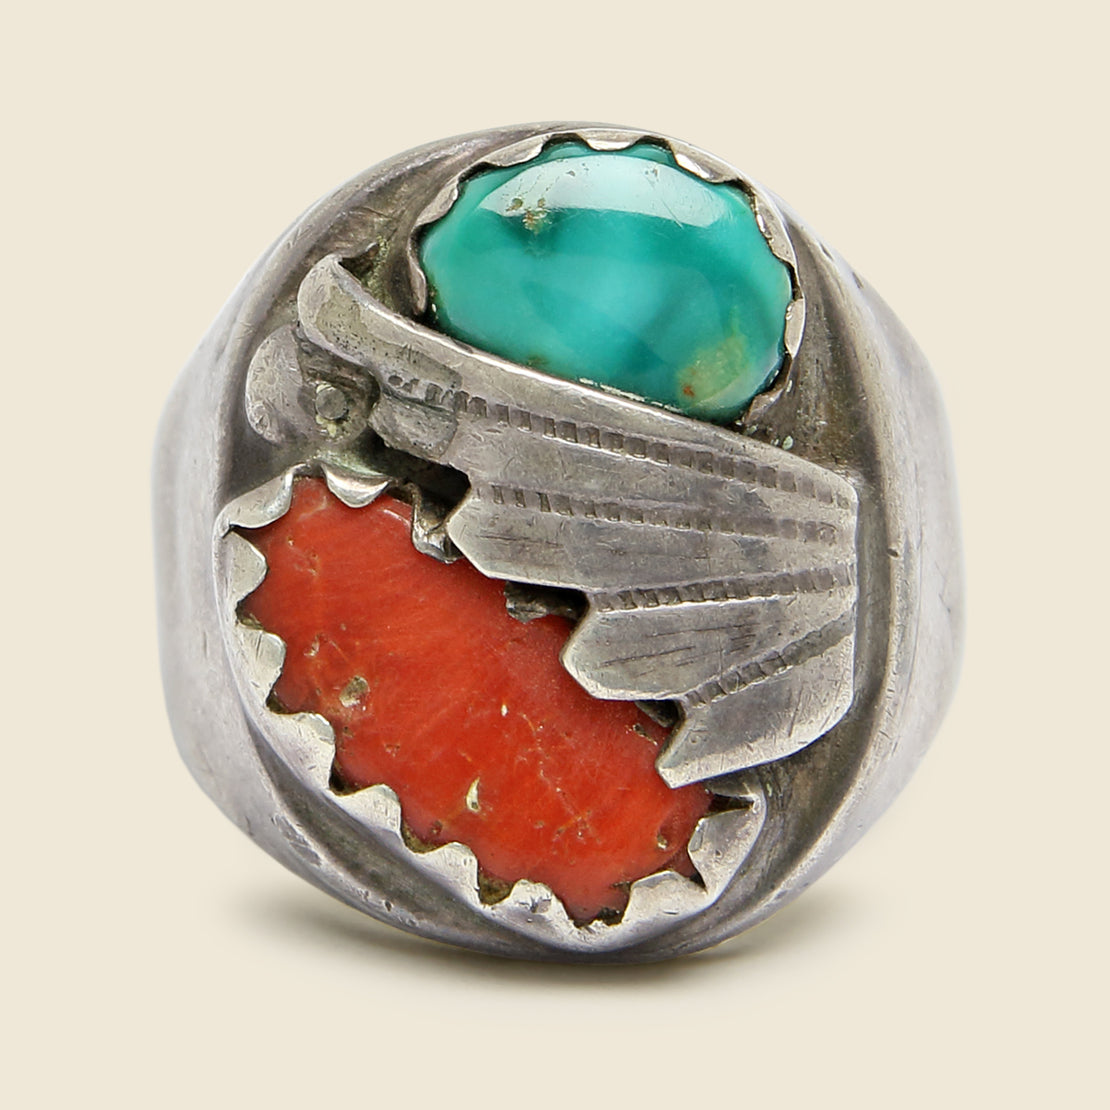 Turquoise and Coral Inlay Ring - Sterling Silver